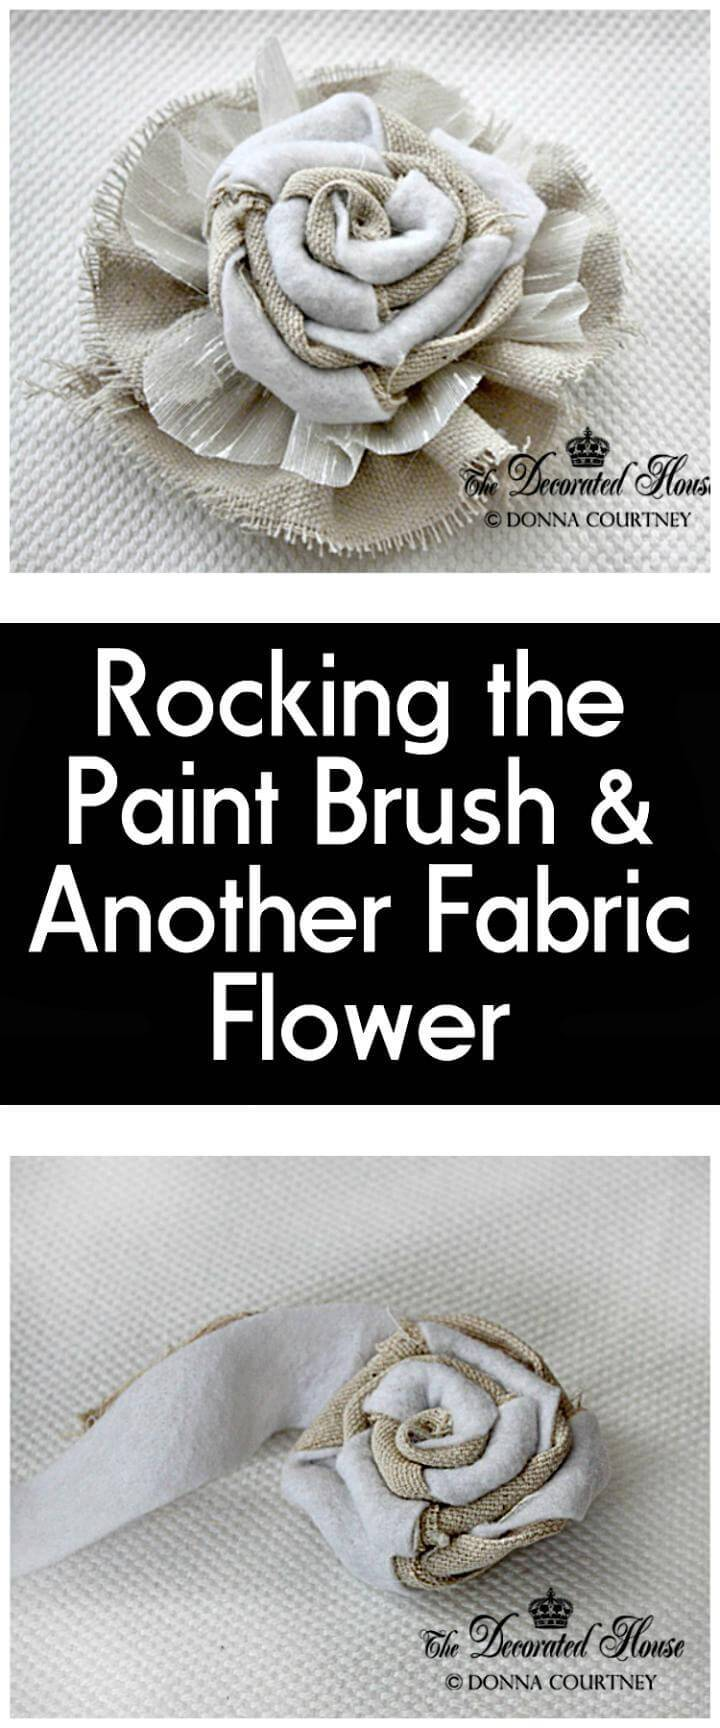 handcrafted paint brush and fabric flower